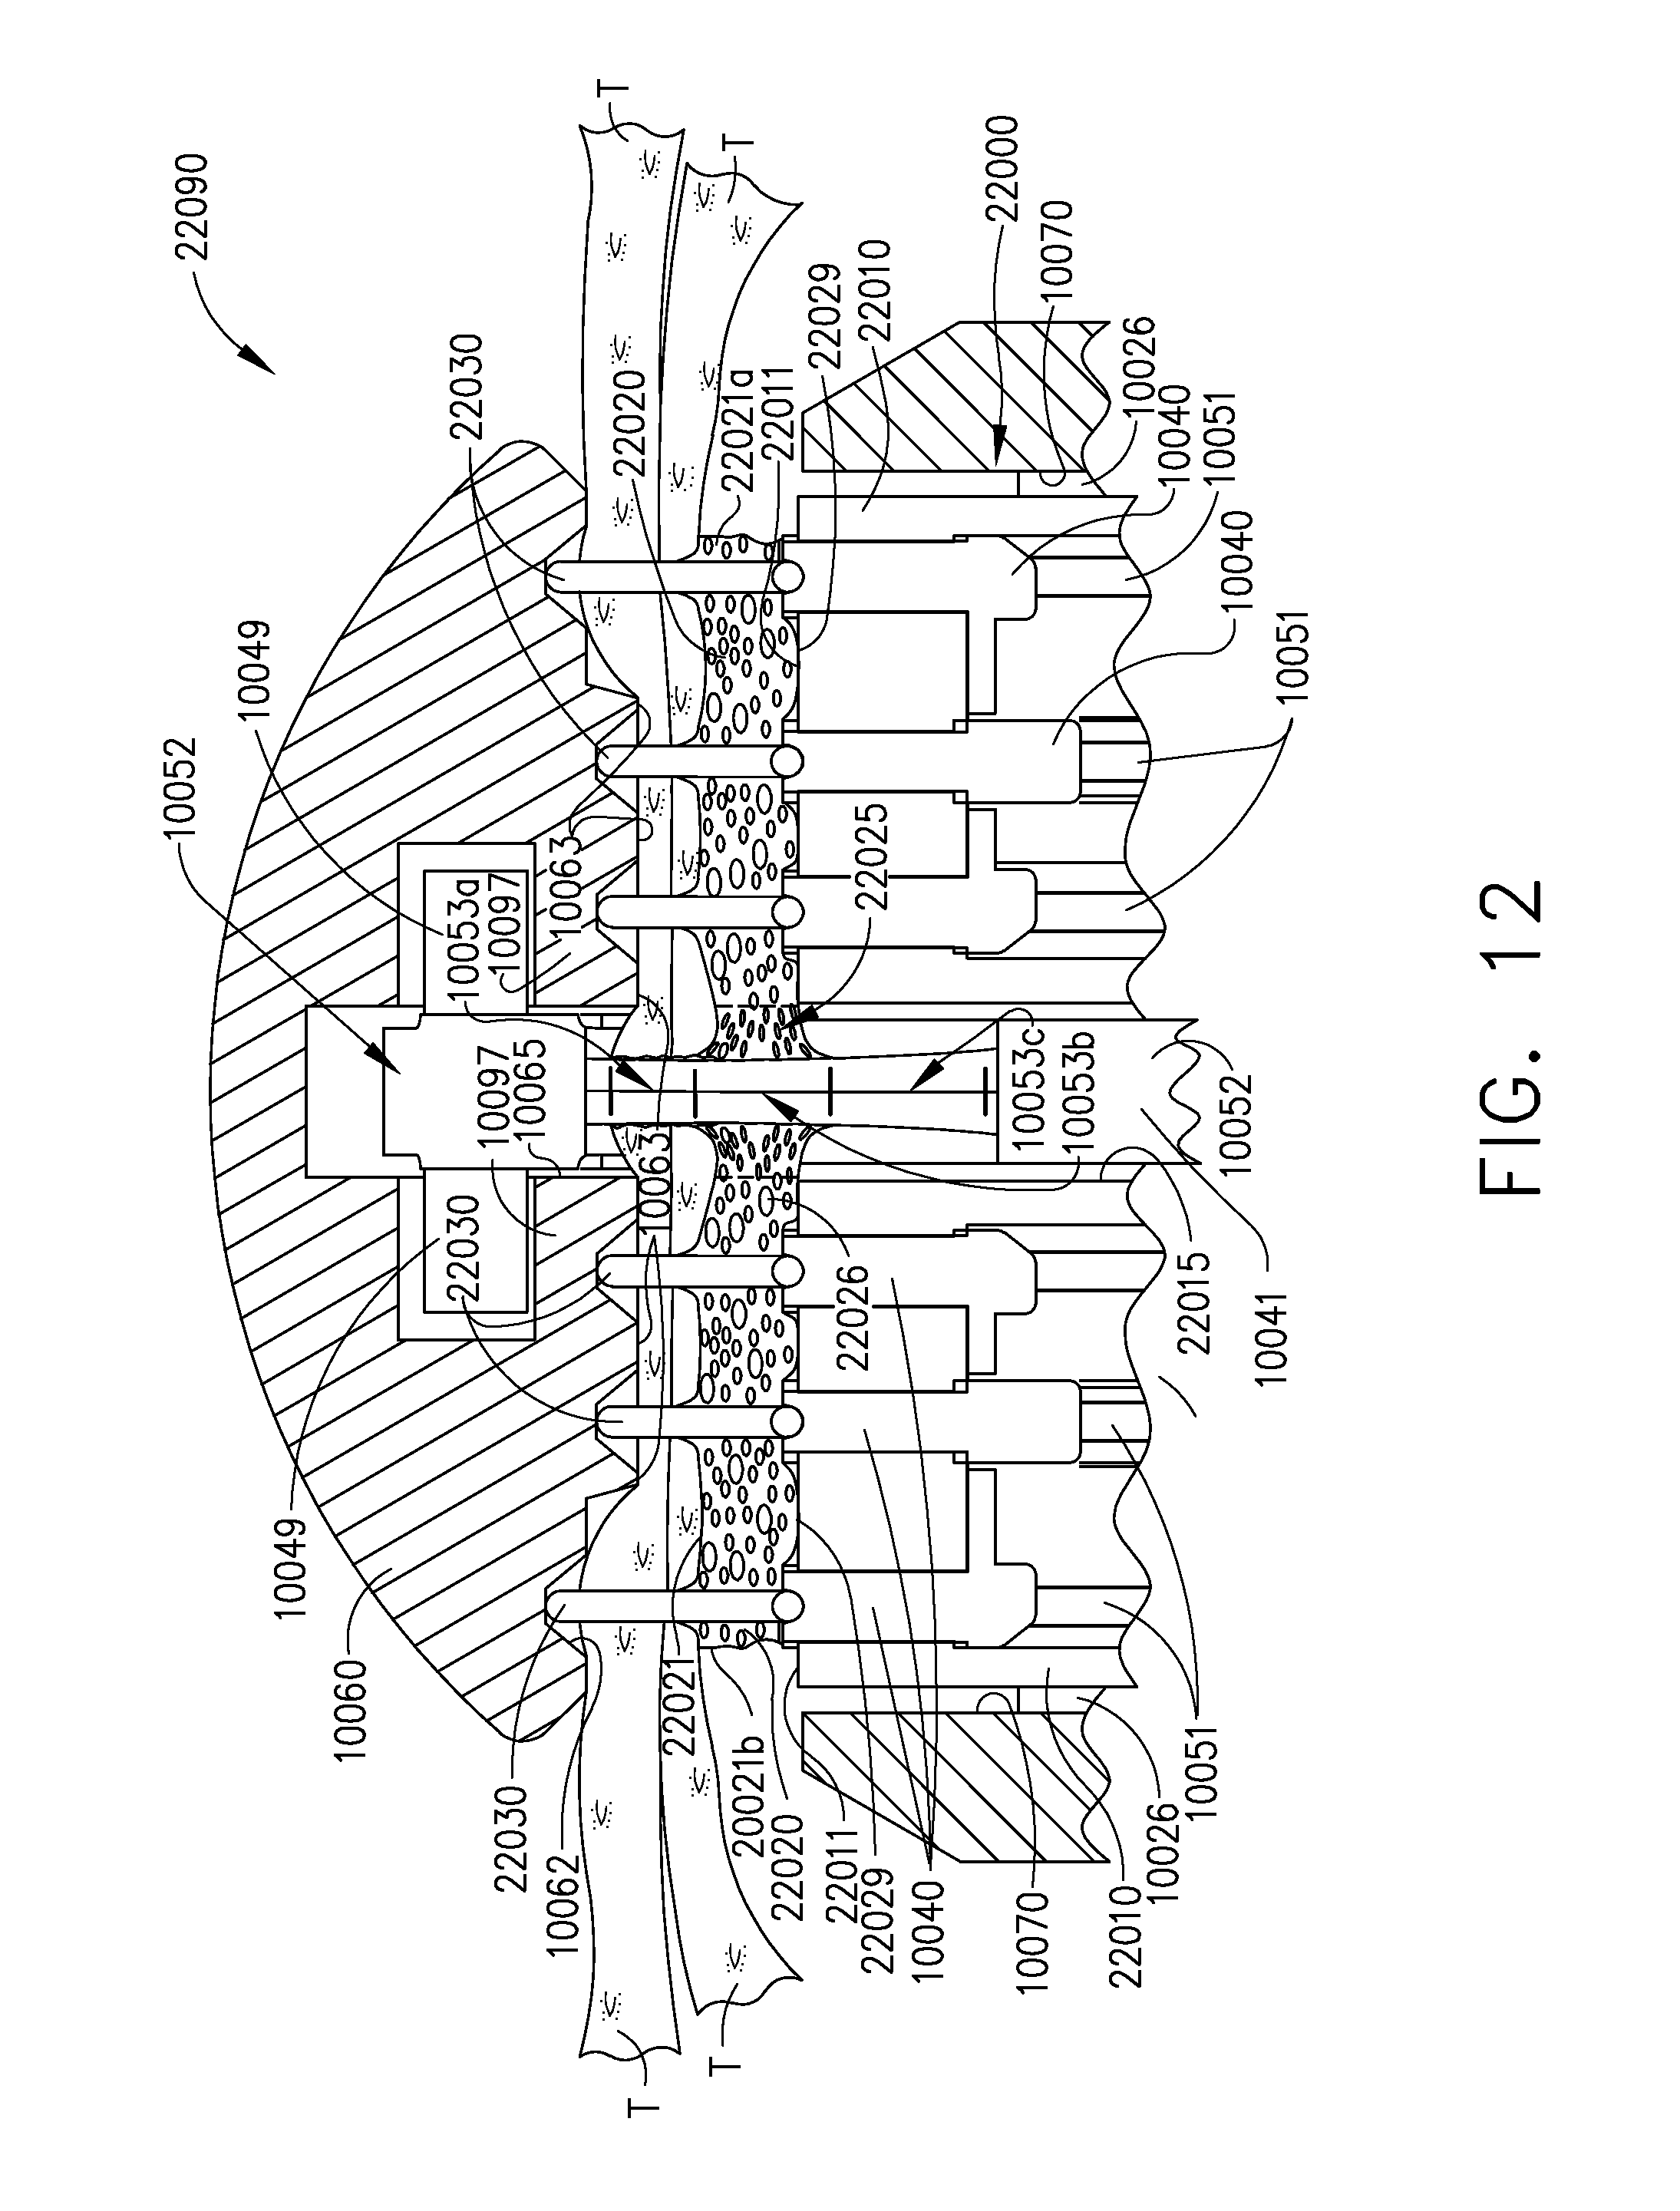 Us9775608b2 Fastening System Comprising A Firing Member Lockout Circuit Diagram Additionally Stun Gun Schematics Circuits Besides Google Patents